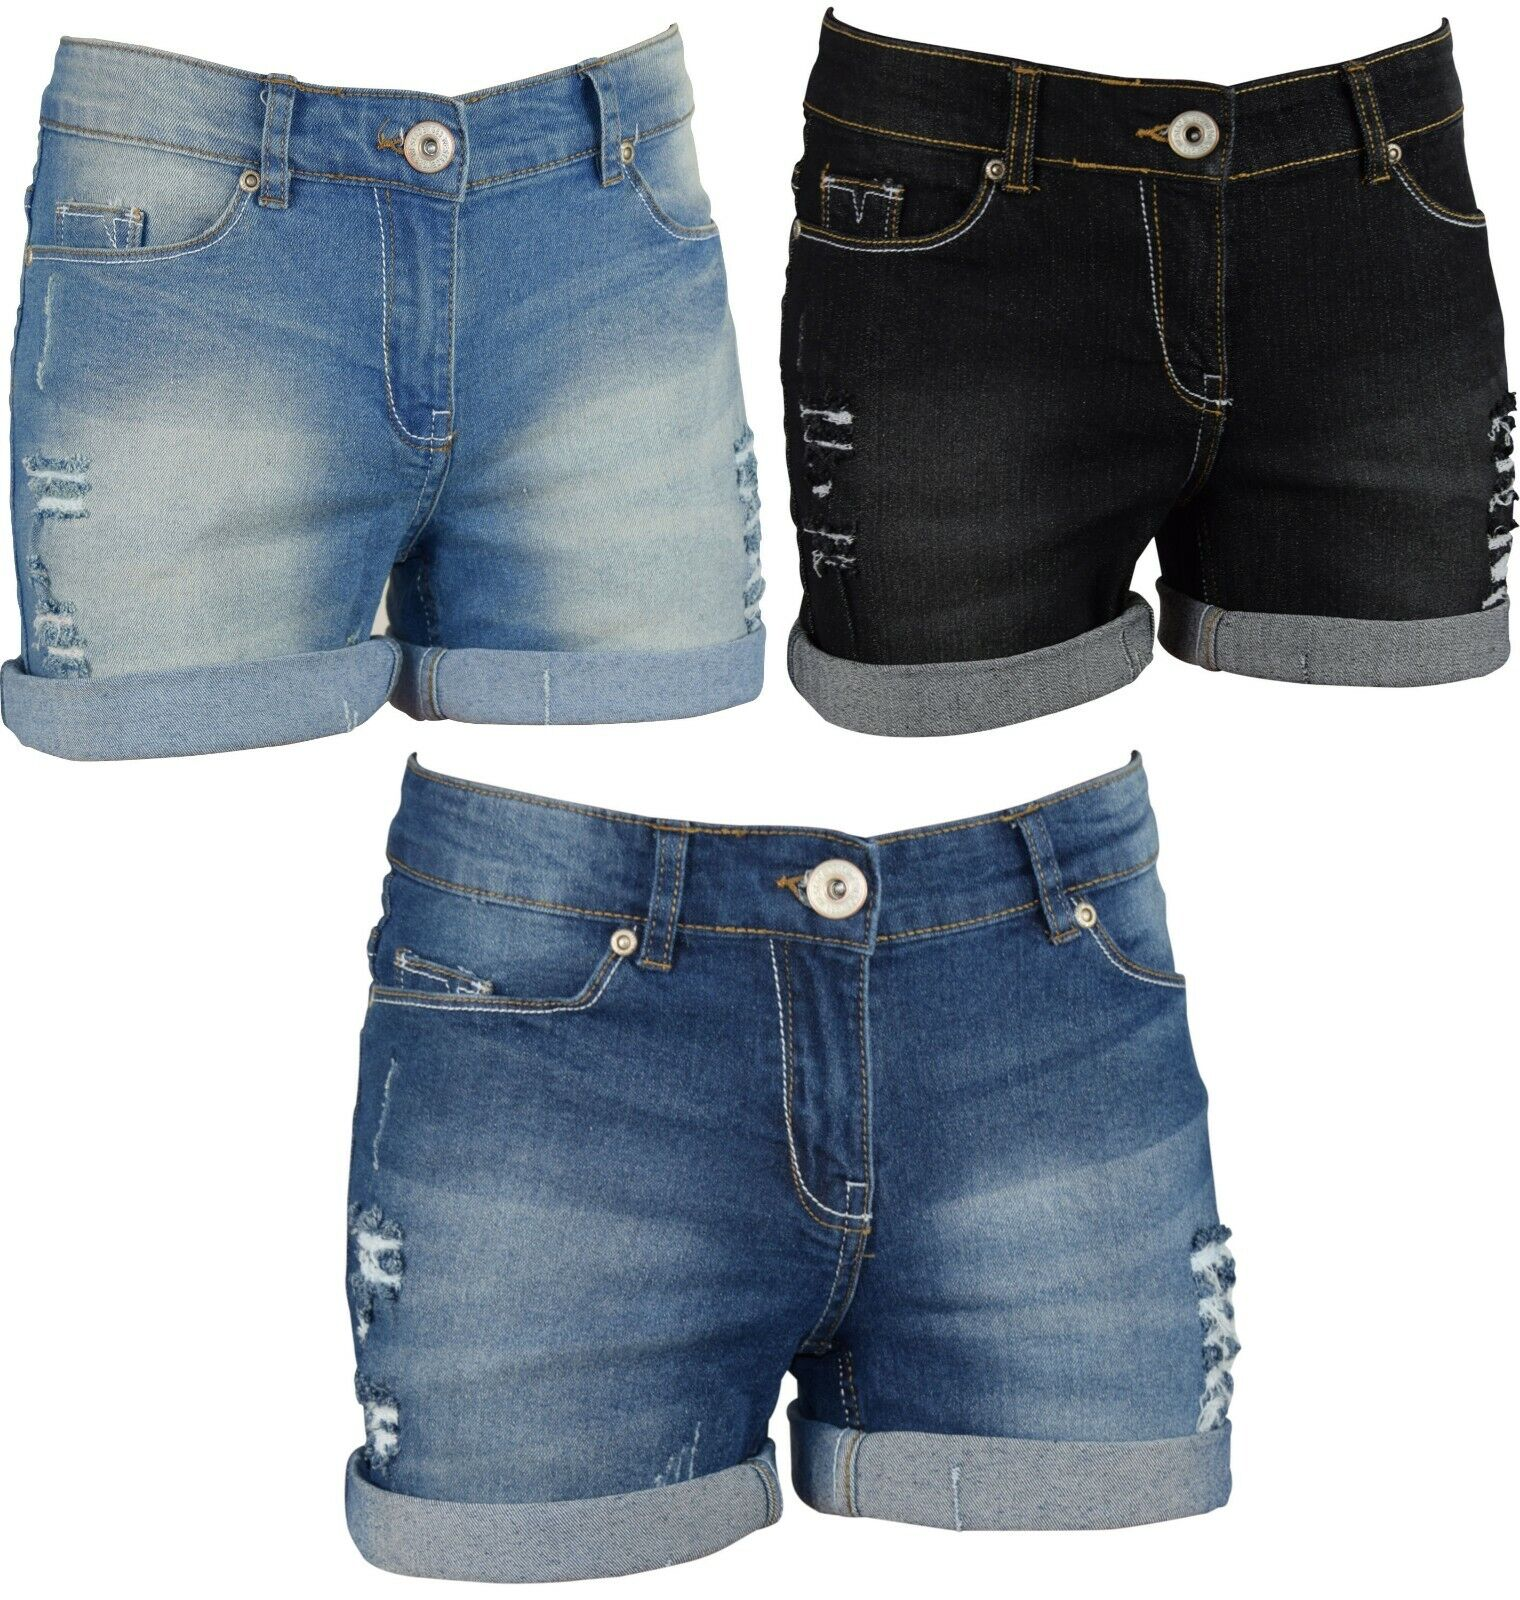 Women's Stretchy Denim Shorts Distressed Jeans Hot Pants Skinny Ripped Turn-up Clothing, Shoes & Accessories